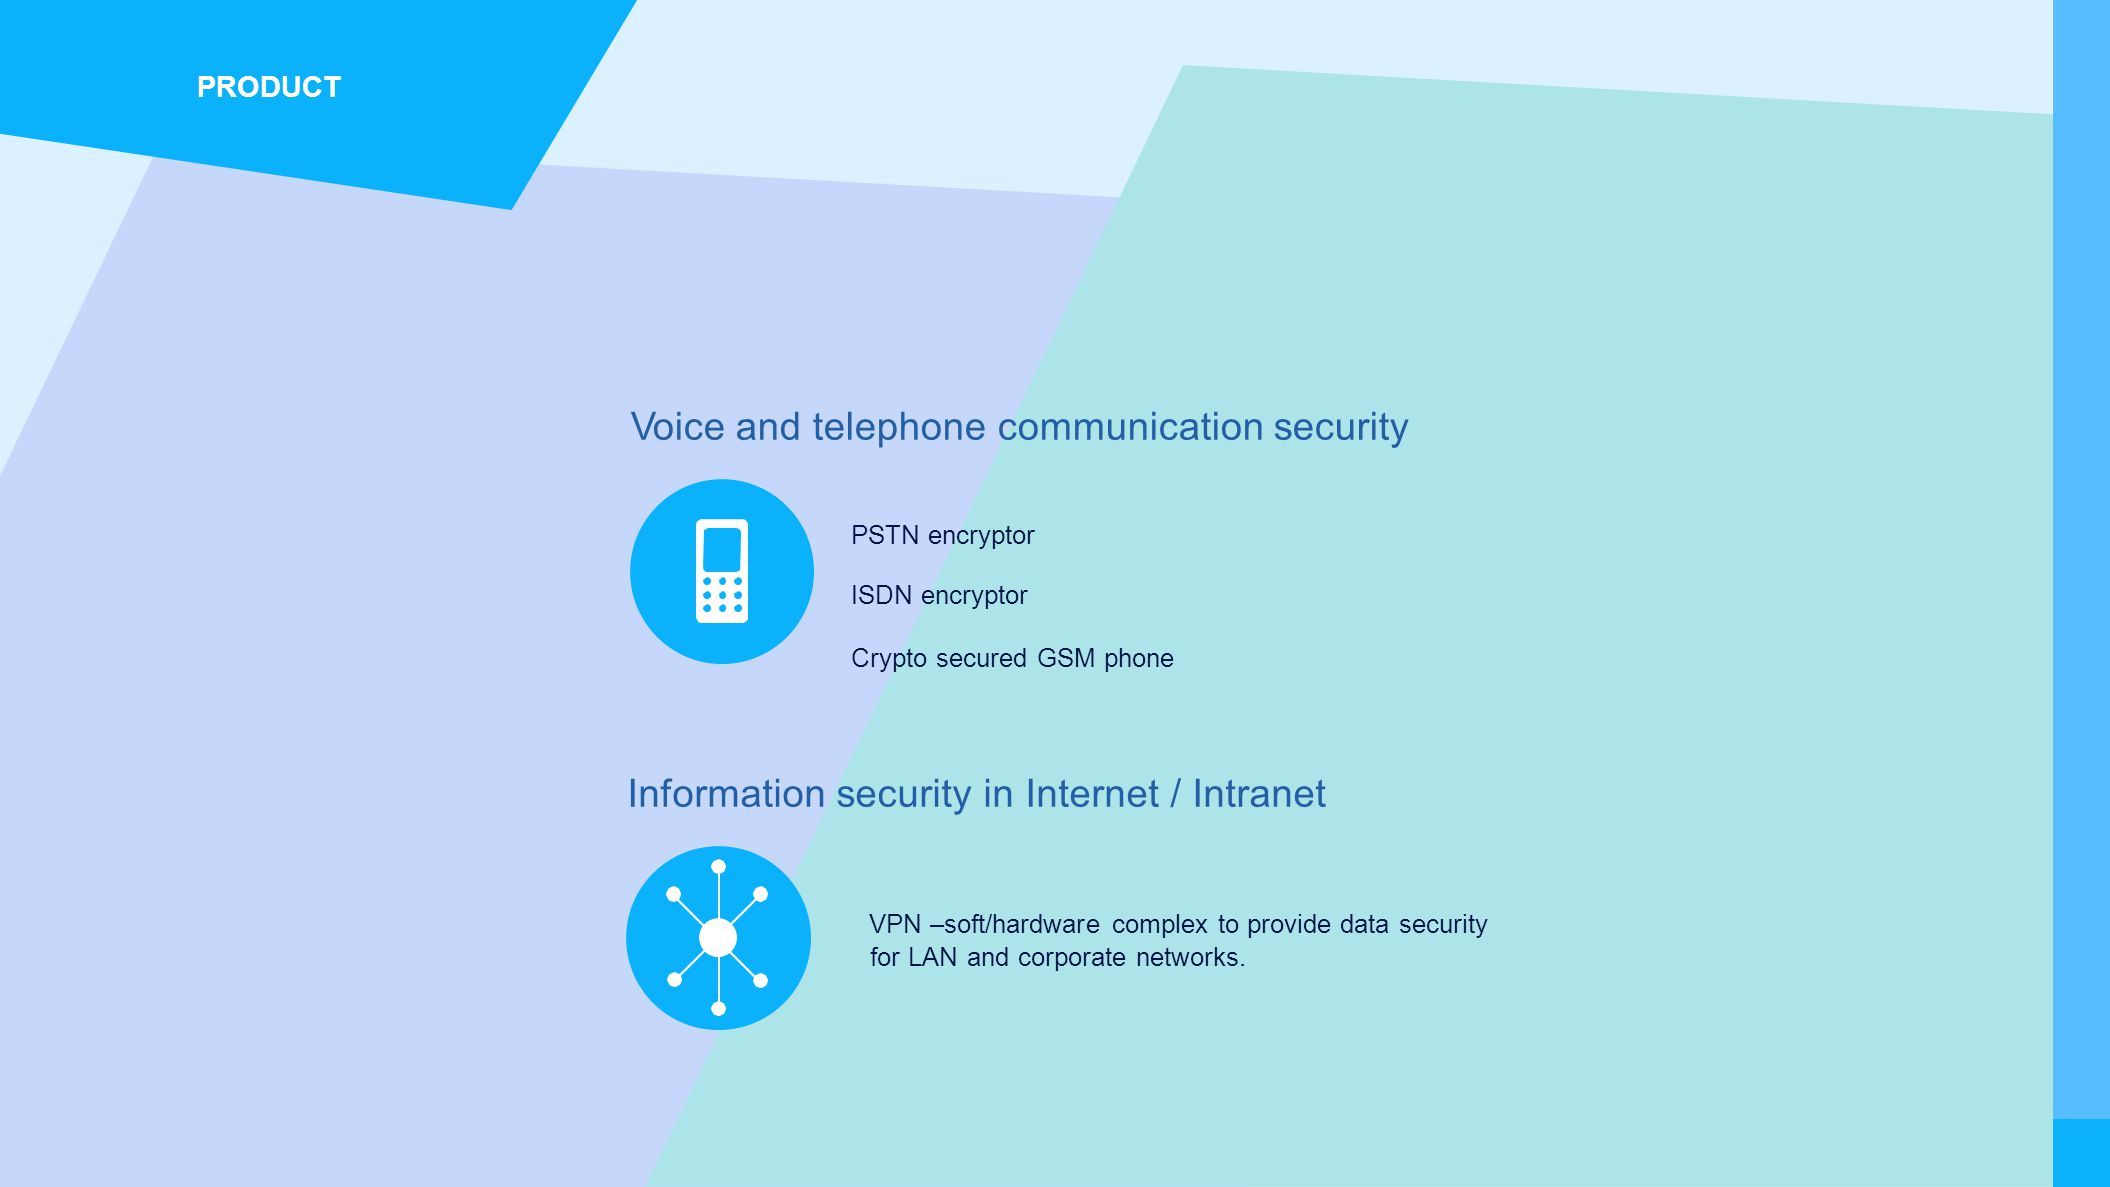 Voice and telephone communication security